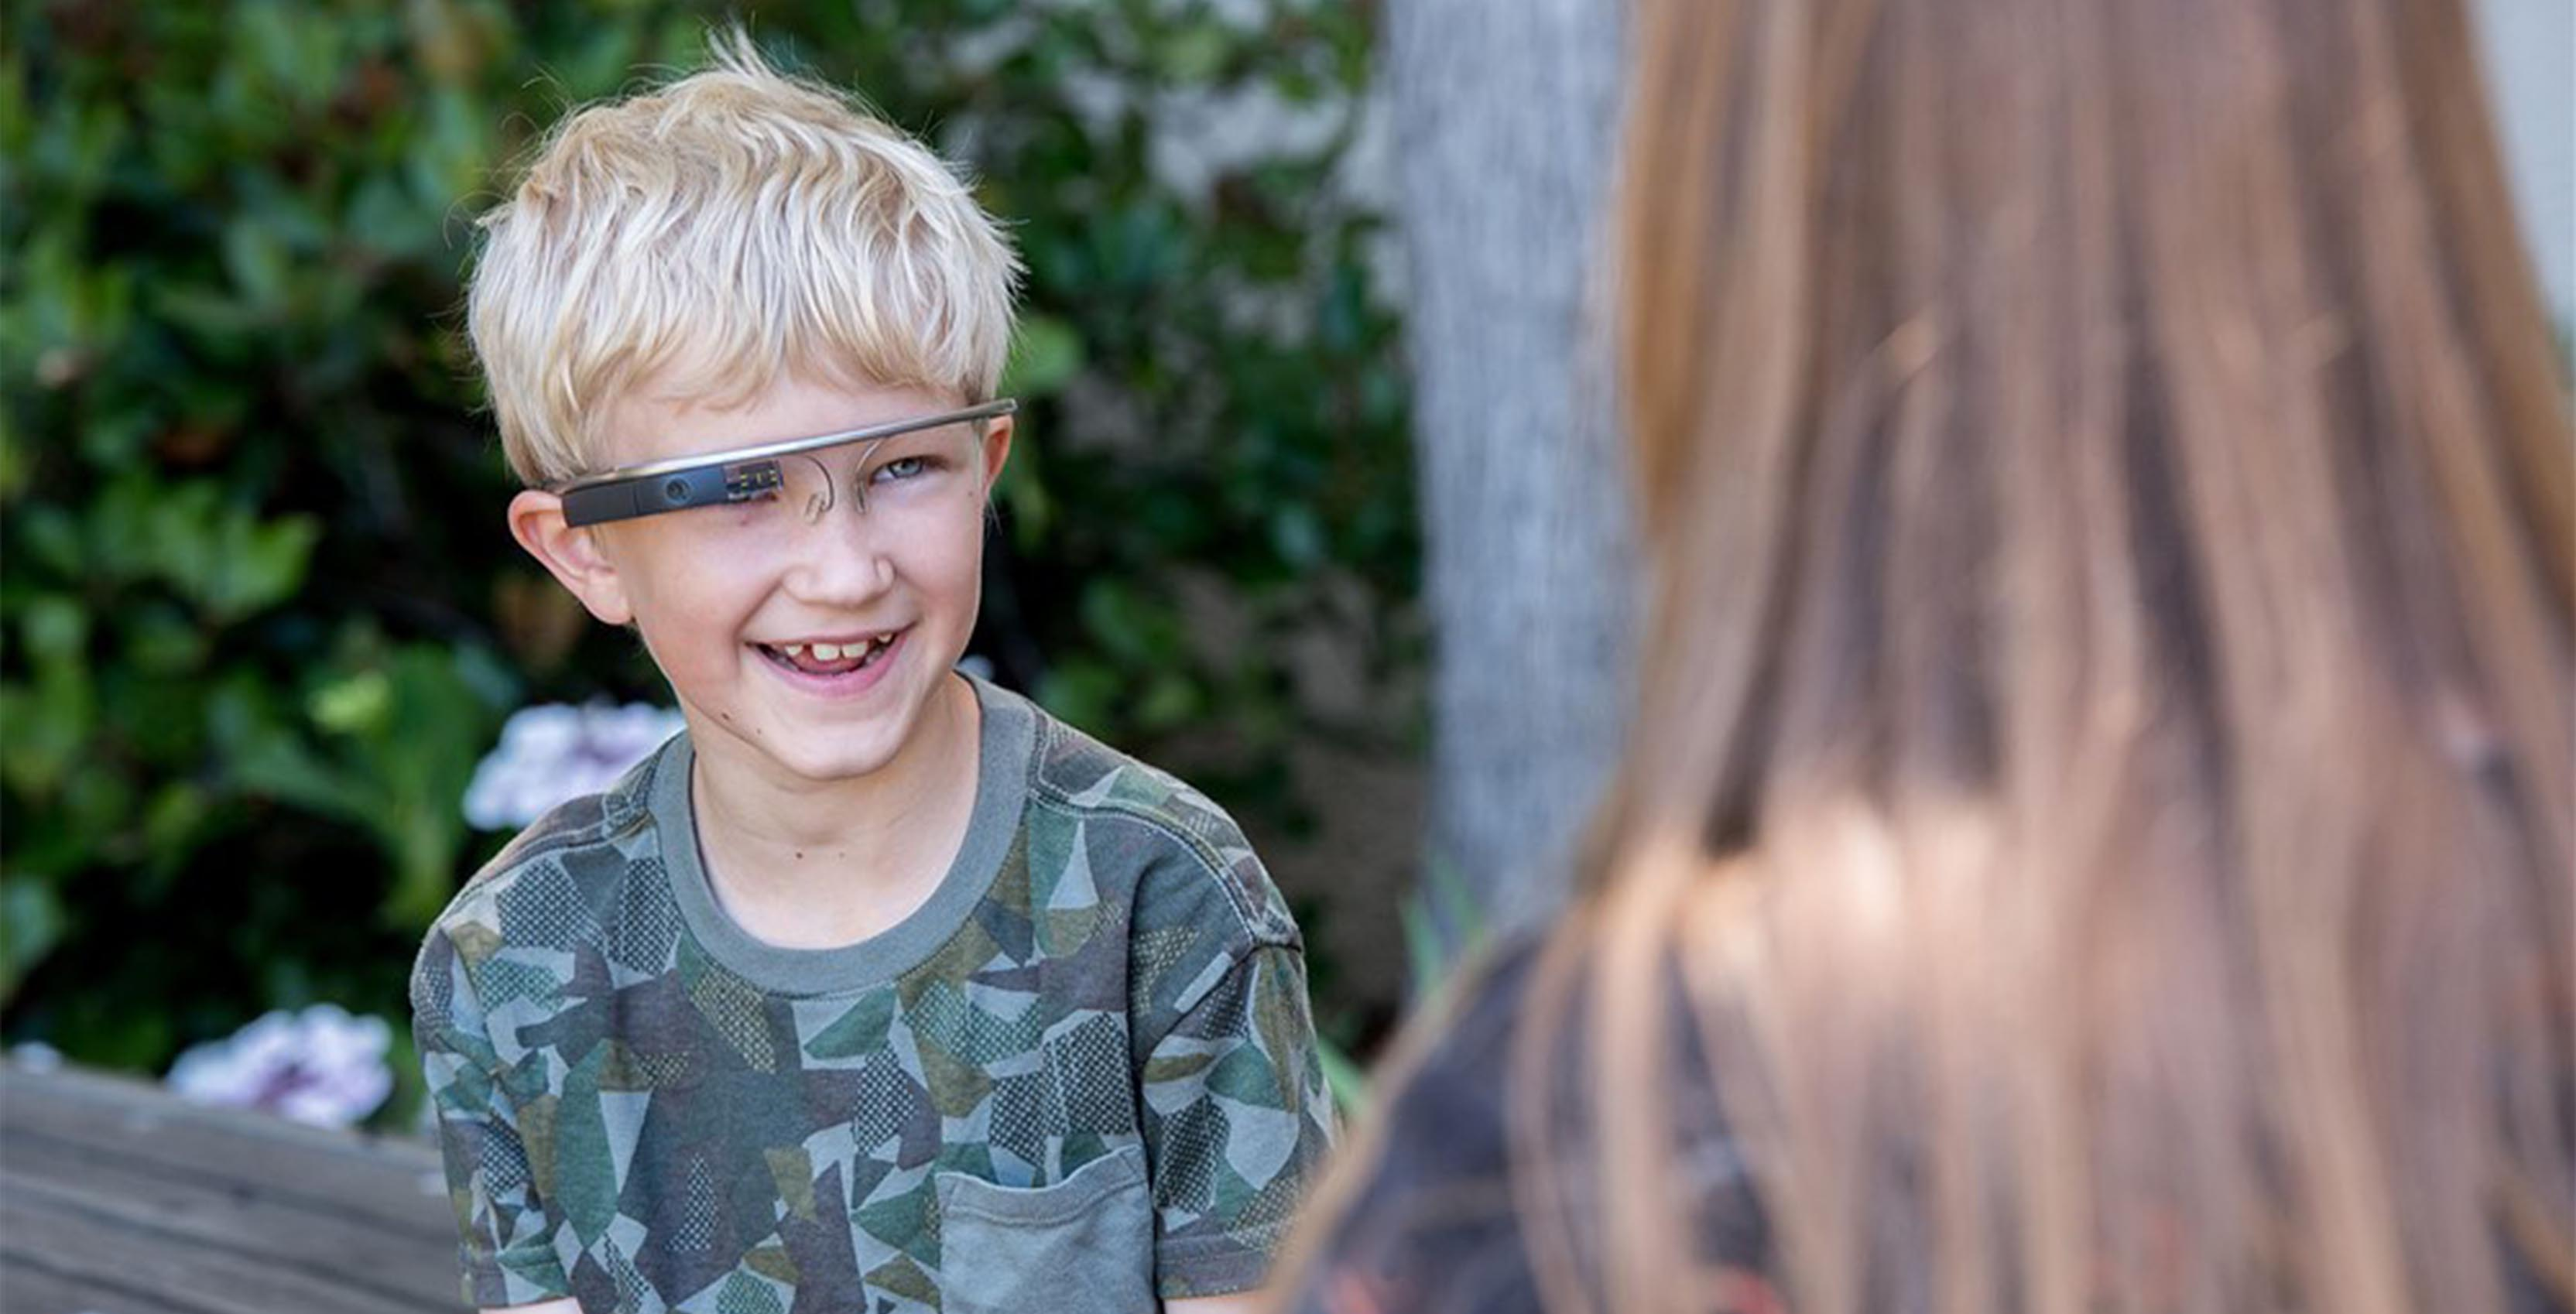 A child uses Google Glass experimental autism therapy